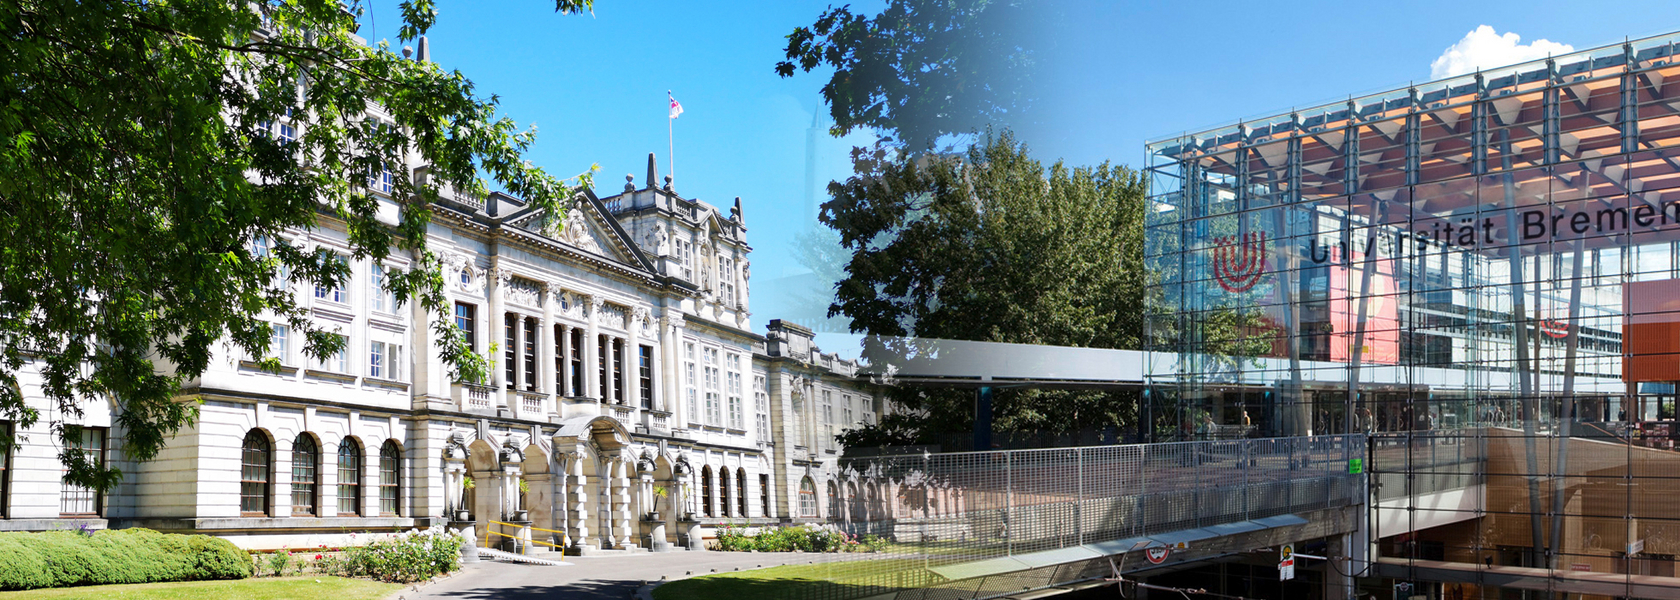 Photomontage of the two universities Cardiff and Bremen.